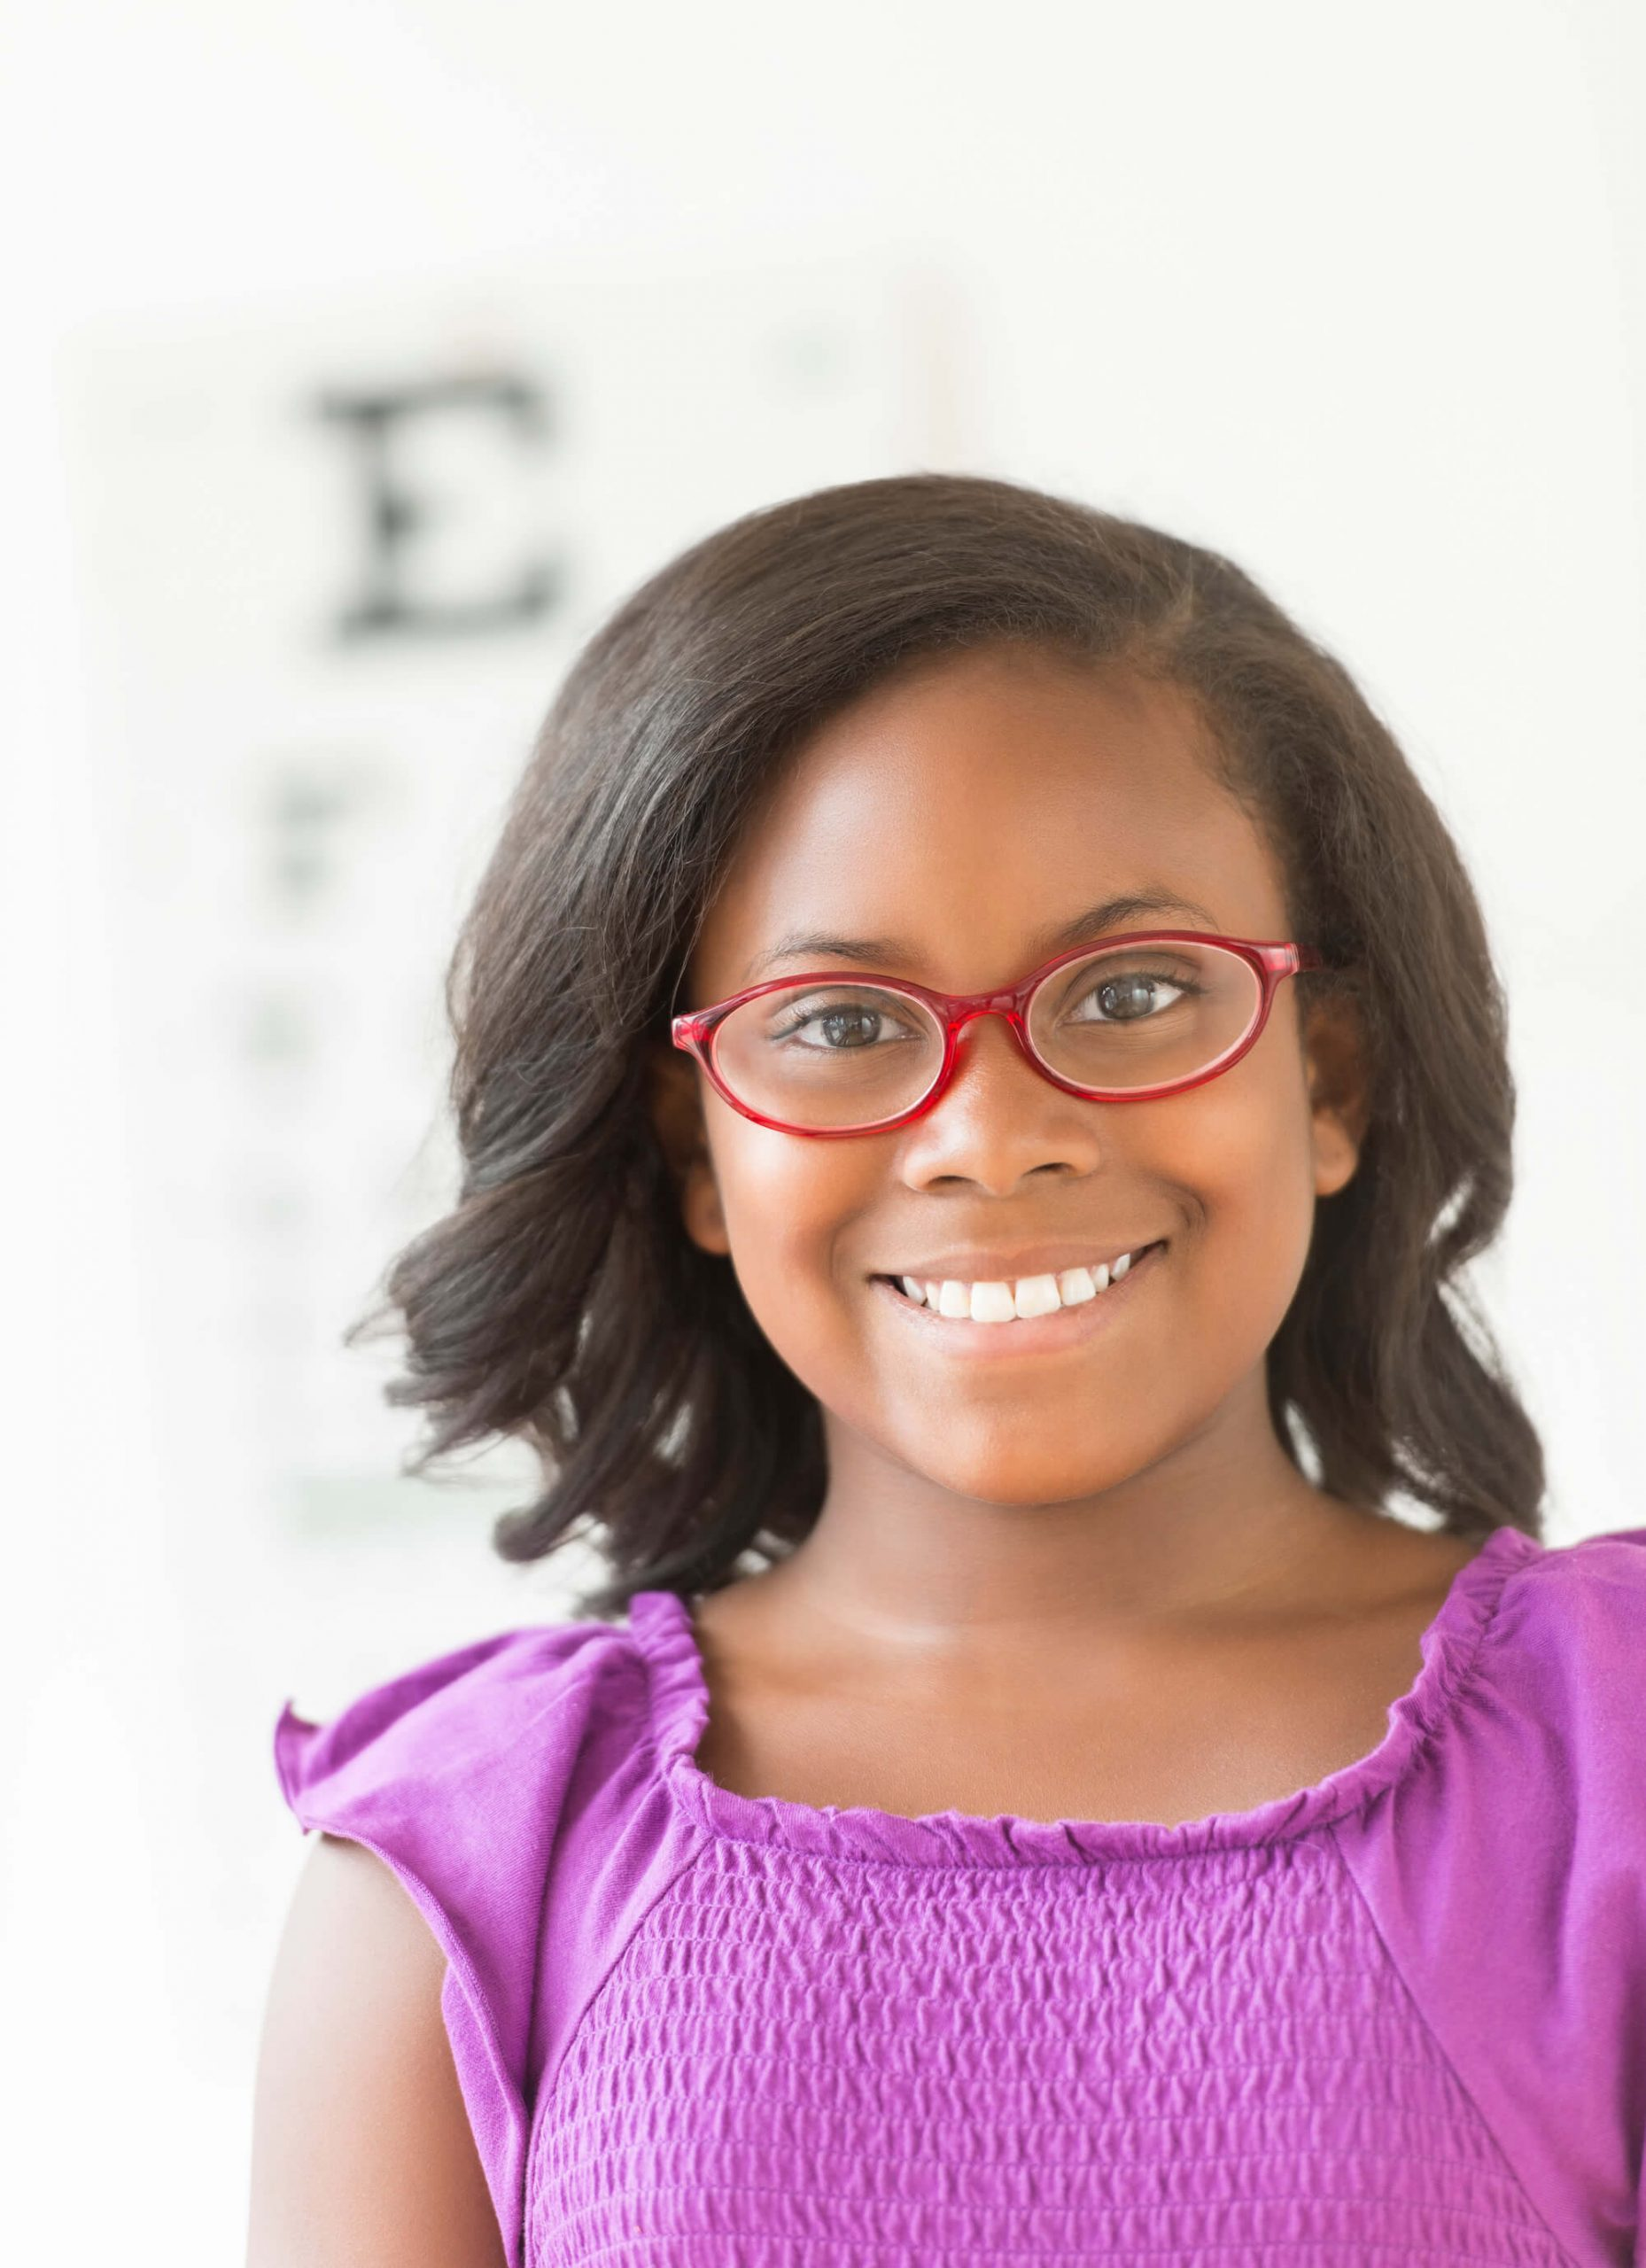 Young girl with glasses on